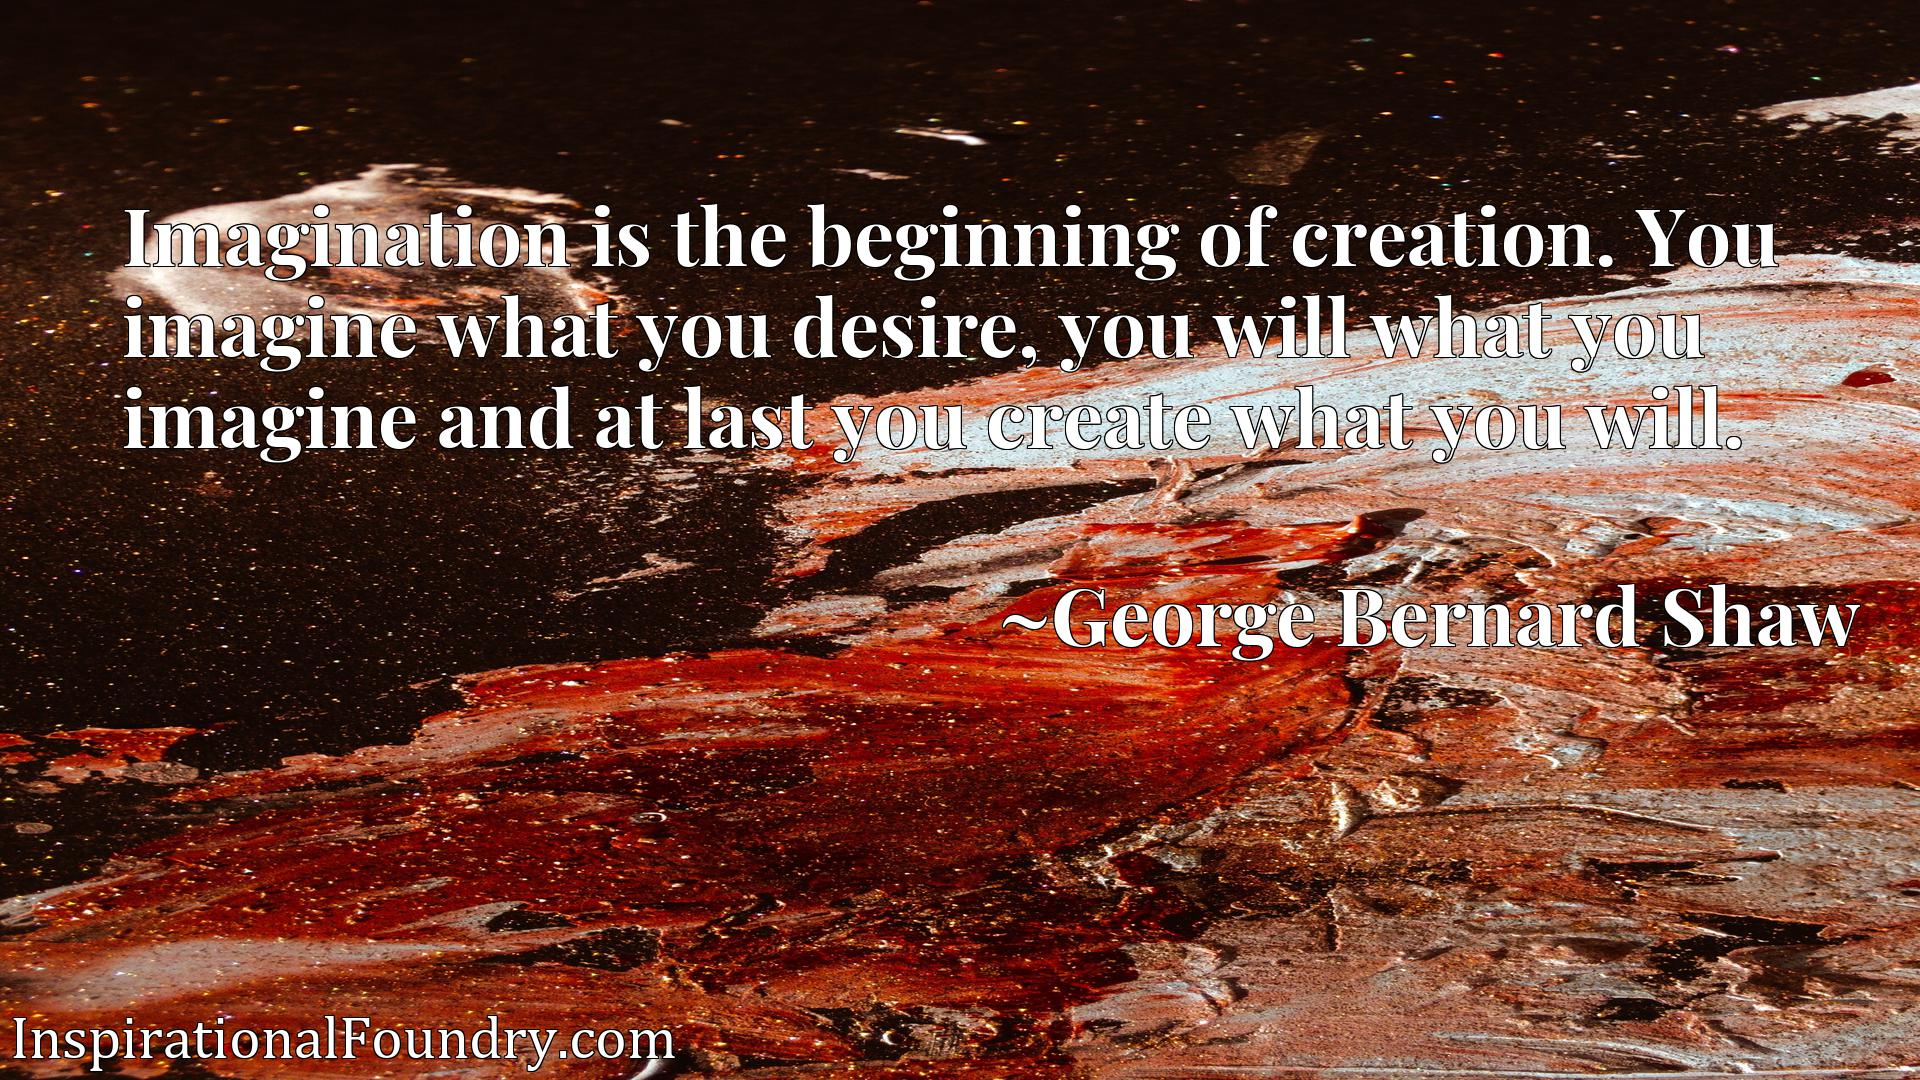 Imagination is the beginning of creation. You imagine what you desire, you will what you imagine and at last you create what you will.